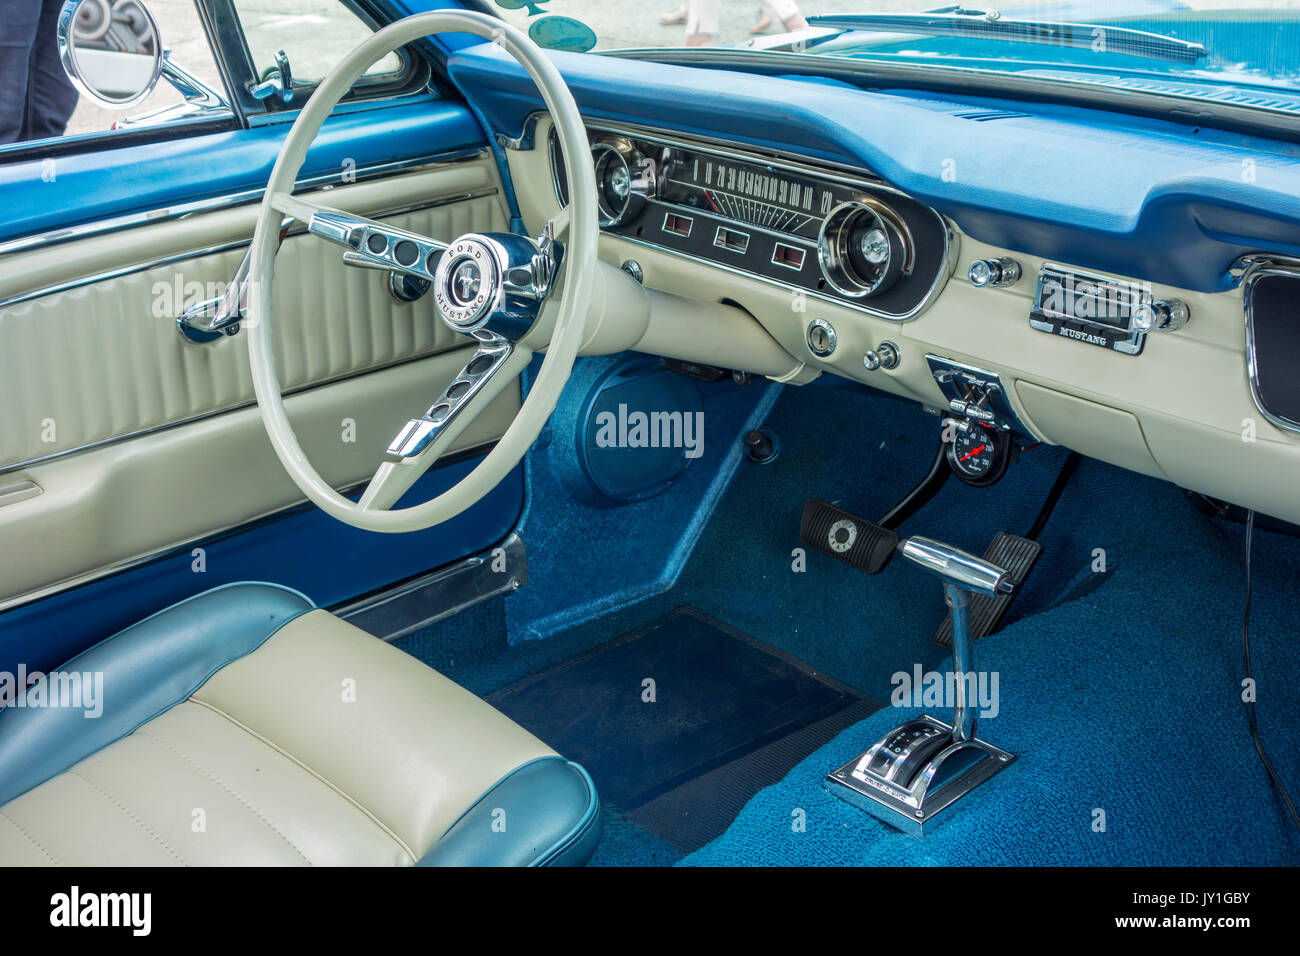 1965 cars stock photos 1965 cars stock images alamy. Black Bedroom Furniture Sets. Home Design Ideas